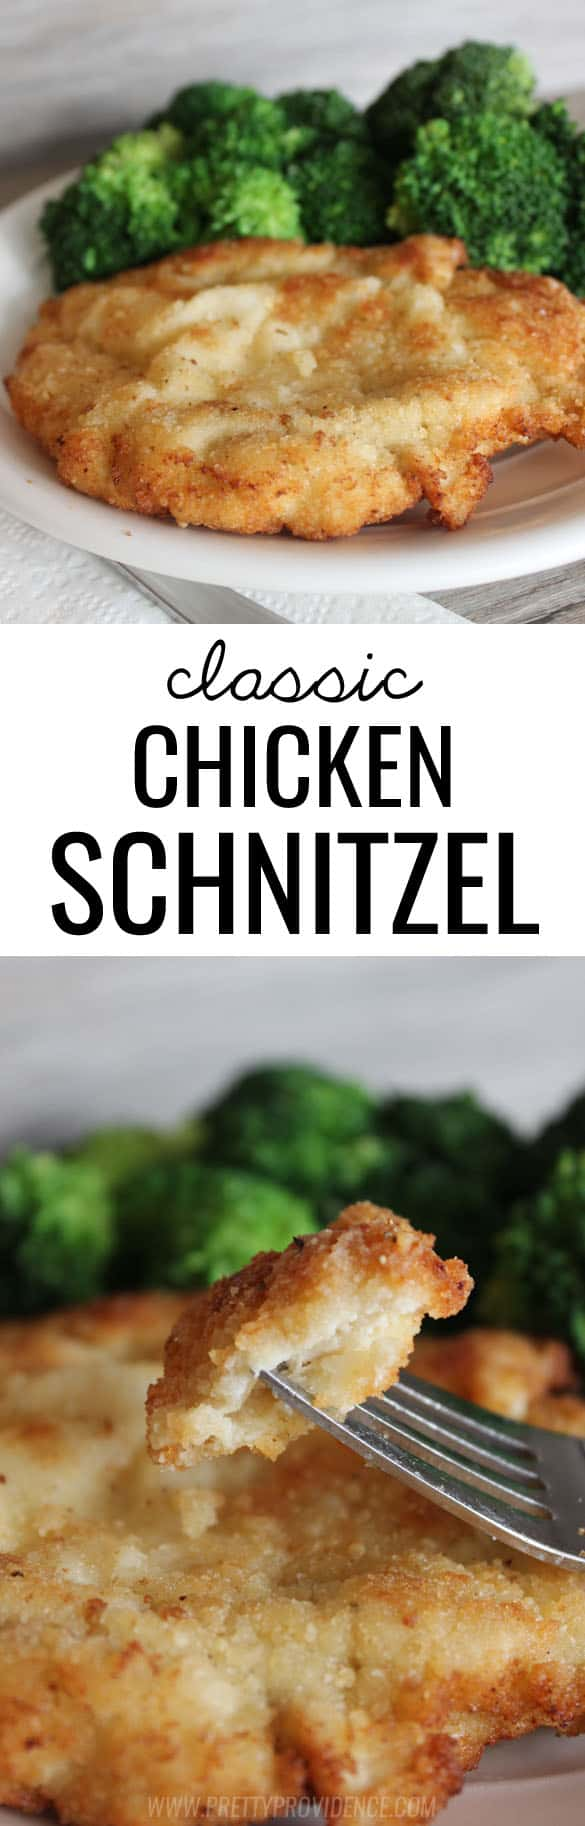 This classic chicken schnitzel recipe cannot be beat! Such a yummy dinner option the whole family will love! #chickenschnitzel #chickenschnitzelrecipe #chickendinner #easydinneridea #dinnerideas #schnitzel